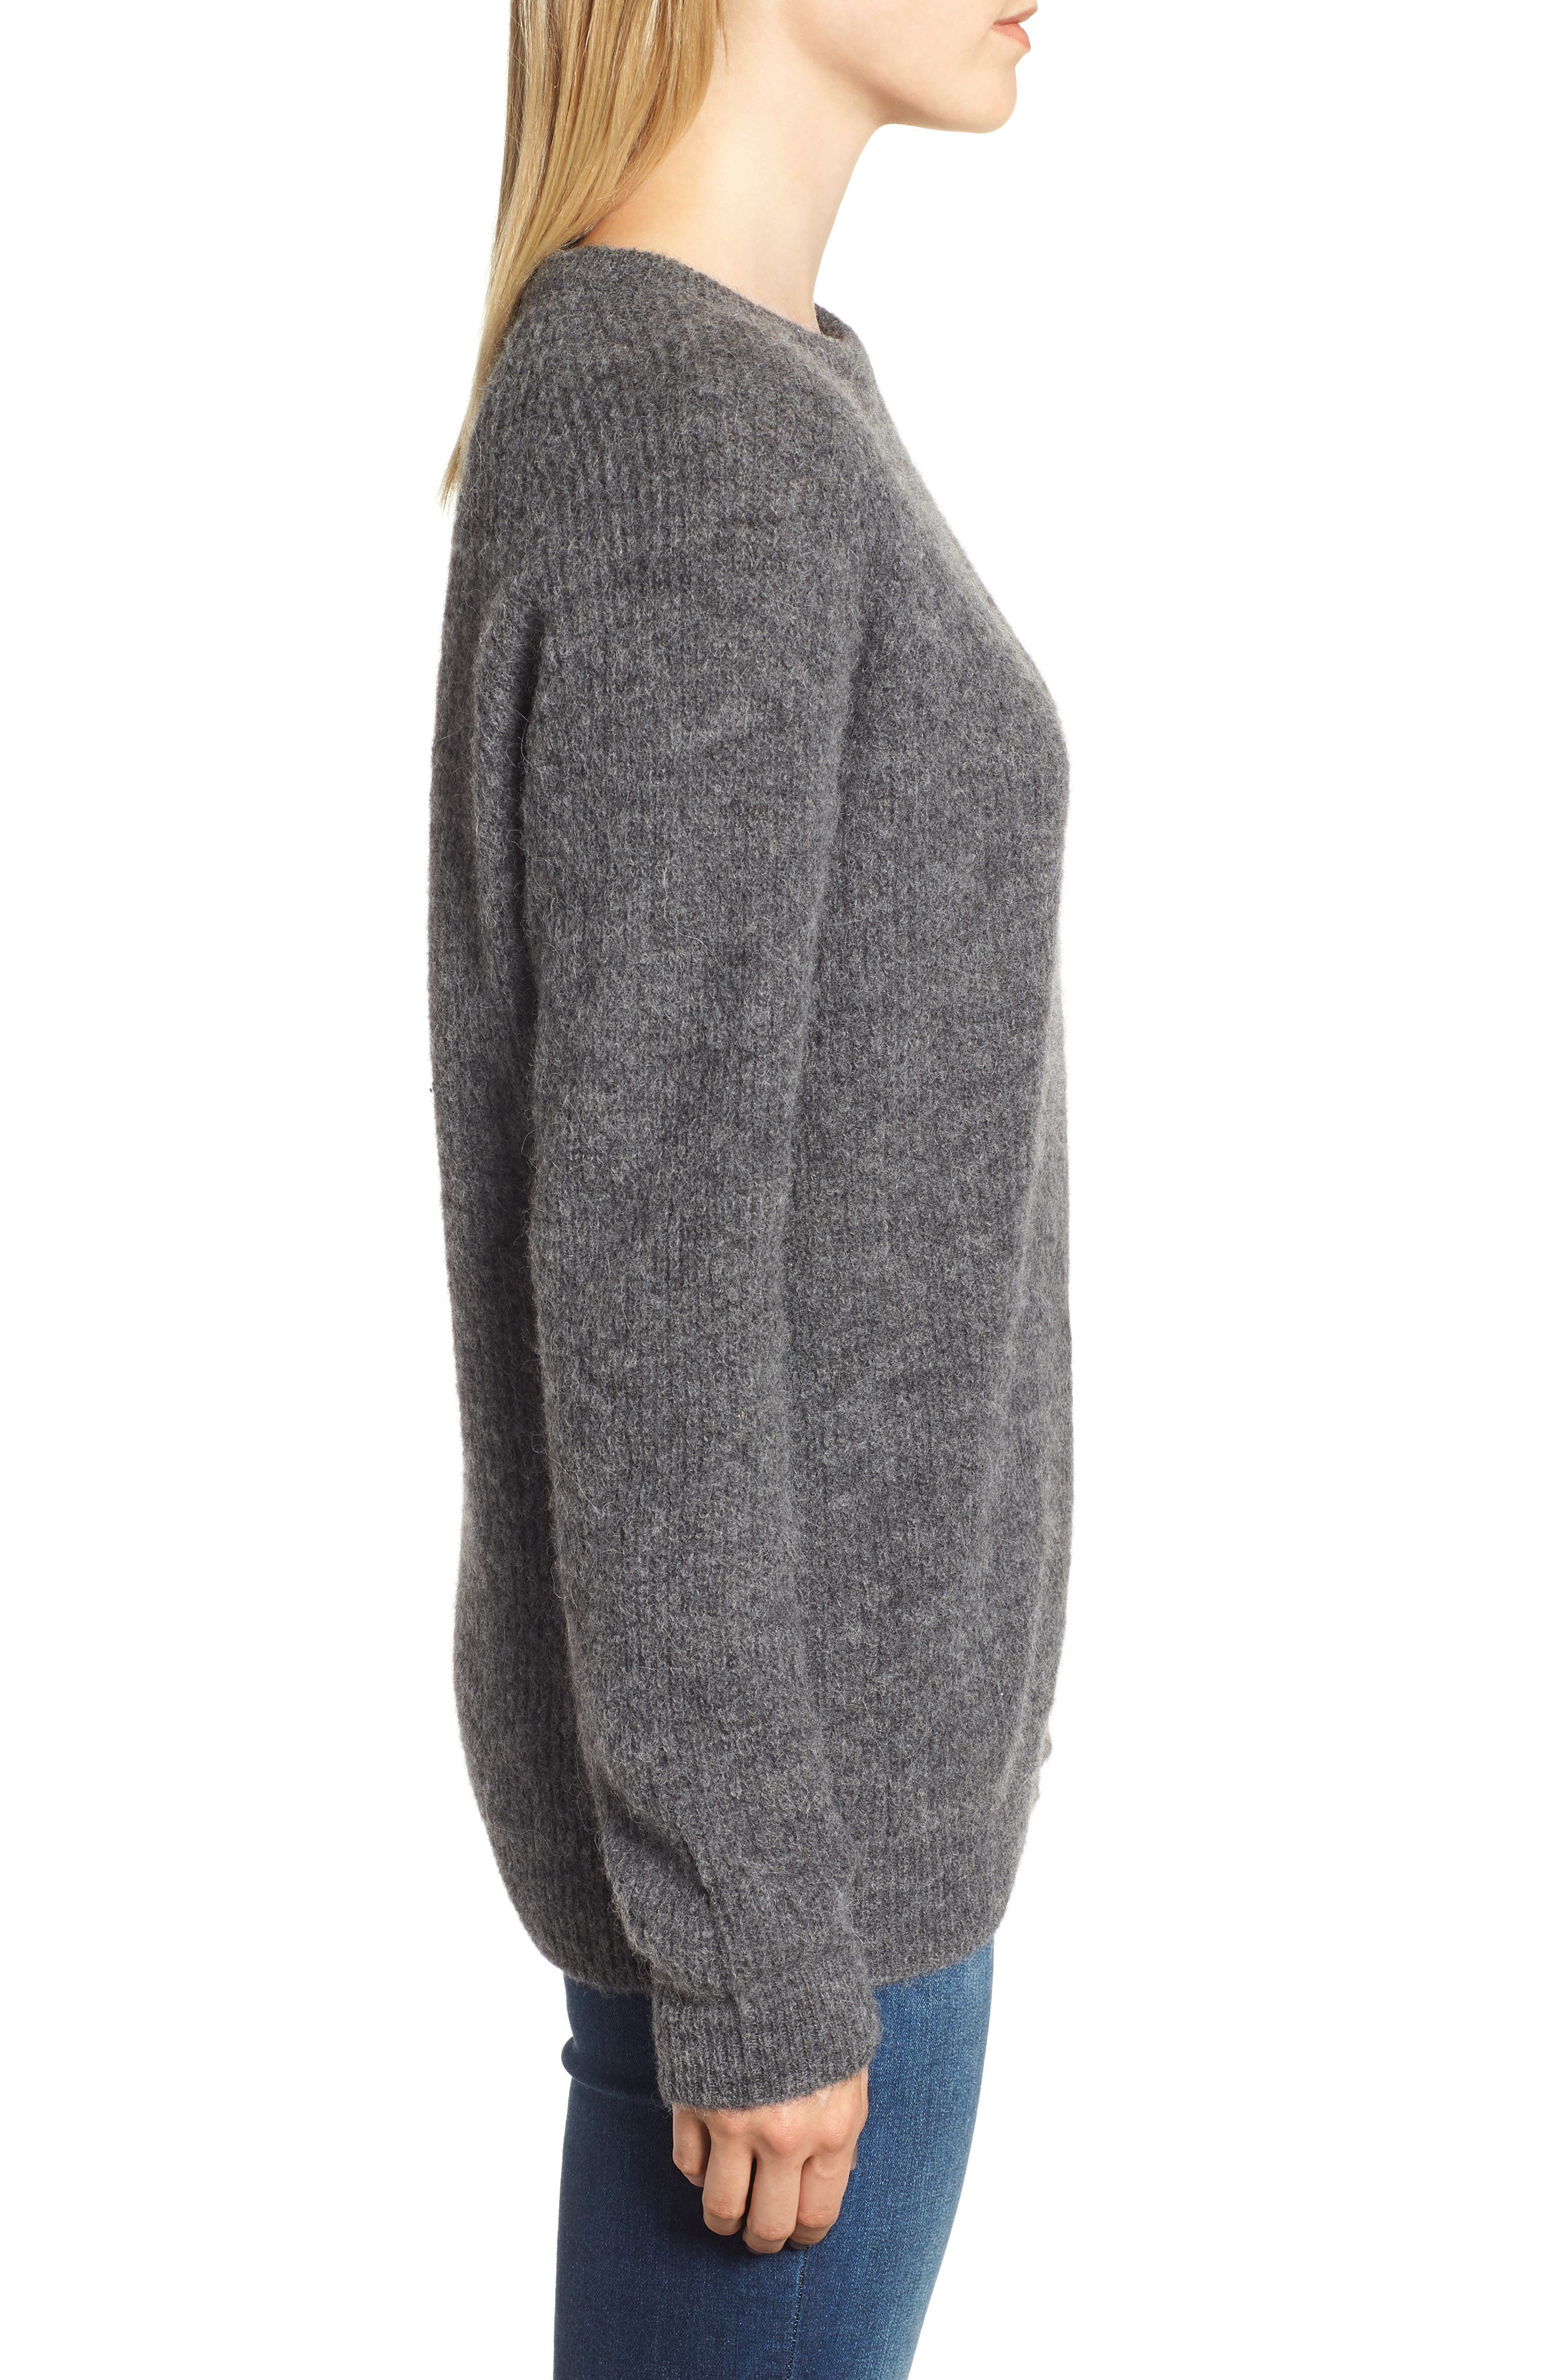 Olivia Crewneck Sweater,                             Alternate thumbnail 3, color,                             DARK GREY MARL